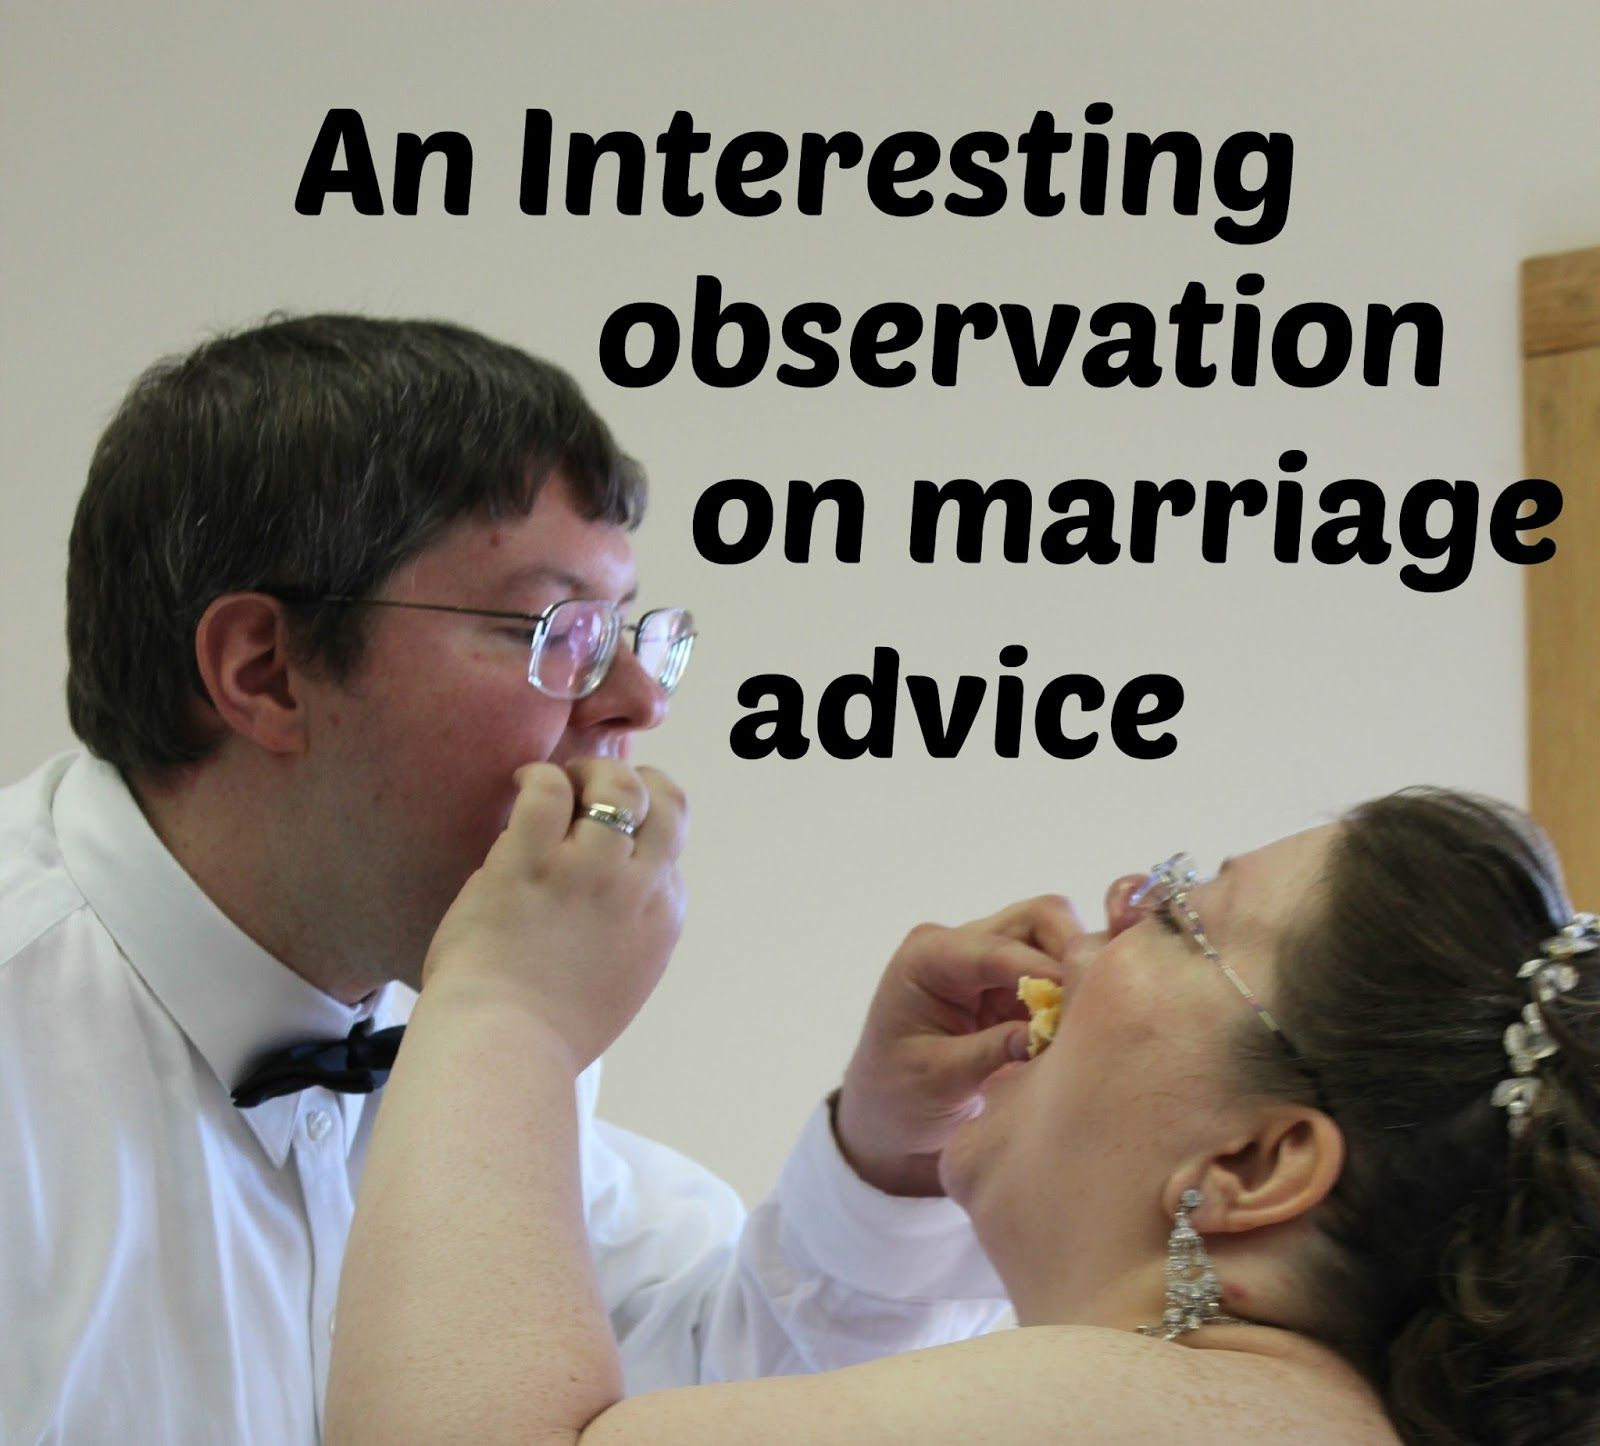 Books, Bargains, Blessings: An Interesting Observation on Marriage Advice